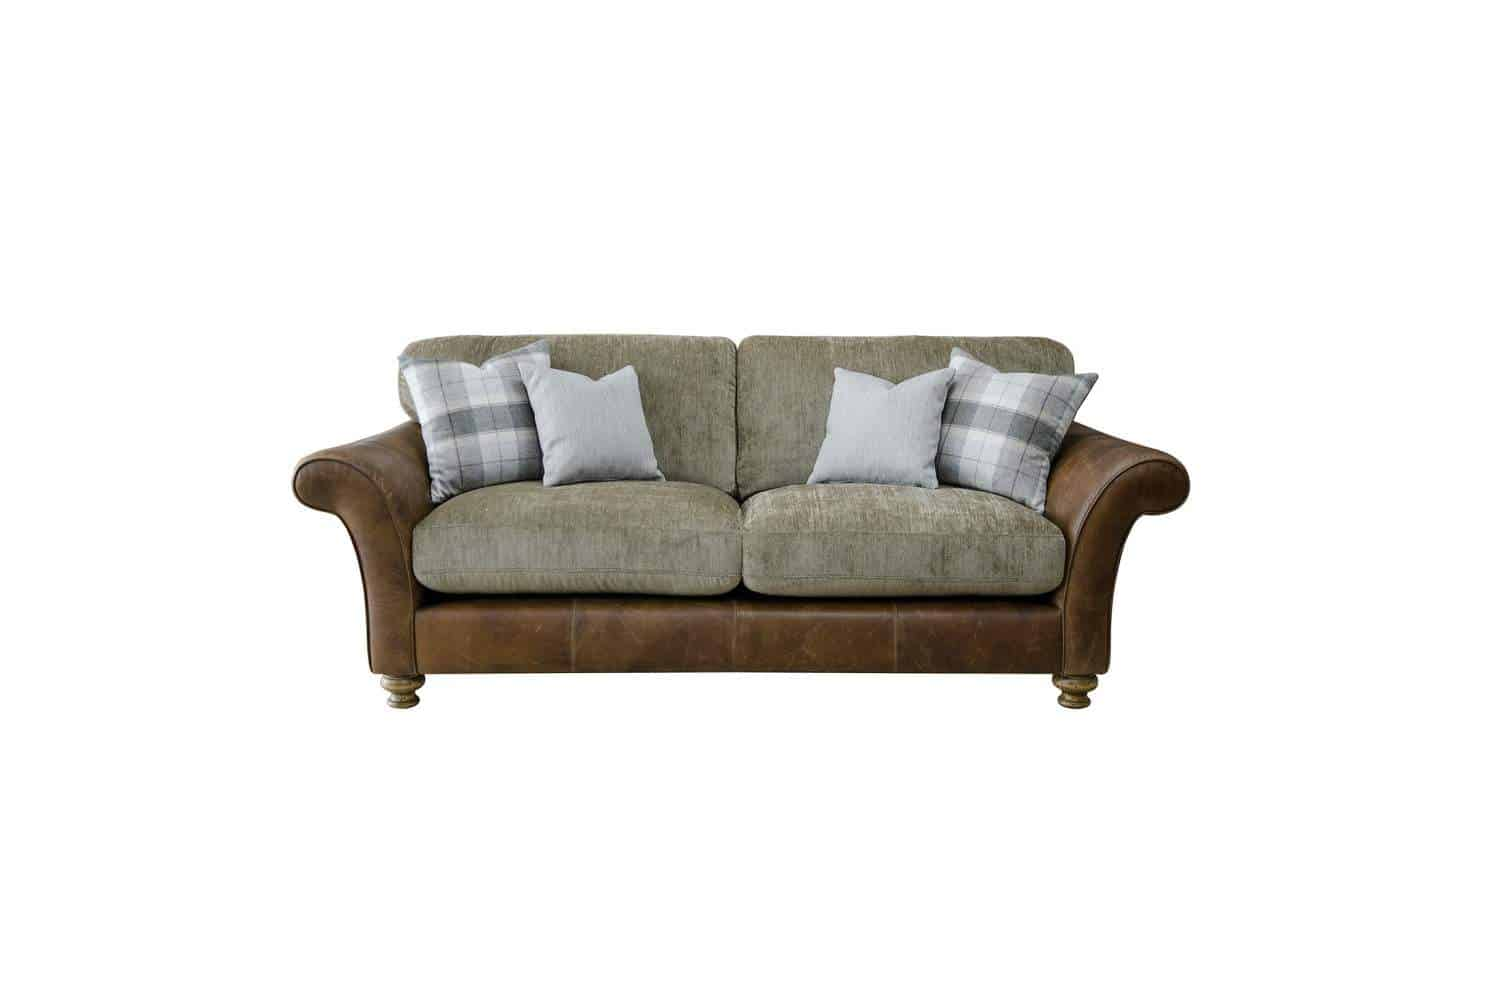 Admirable Lawrence 3 Seat Sofa Caraccident5 Cool Chair Designs And Ideas Caraccident5Info